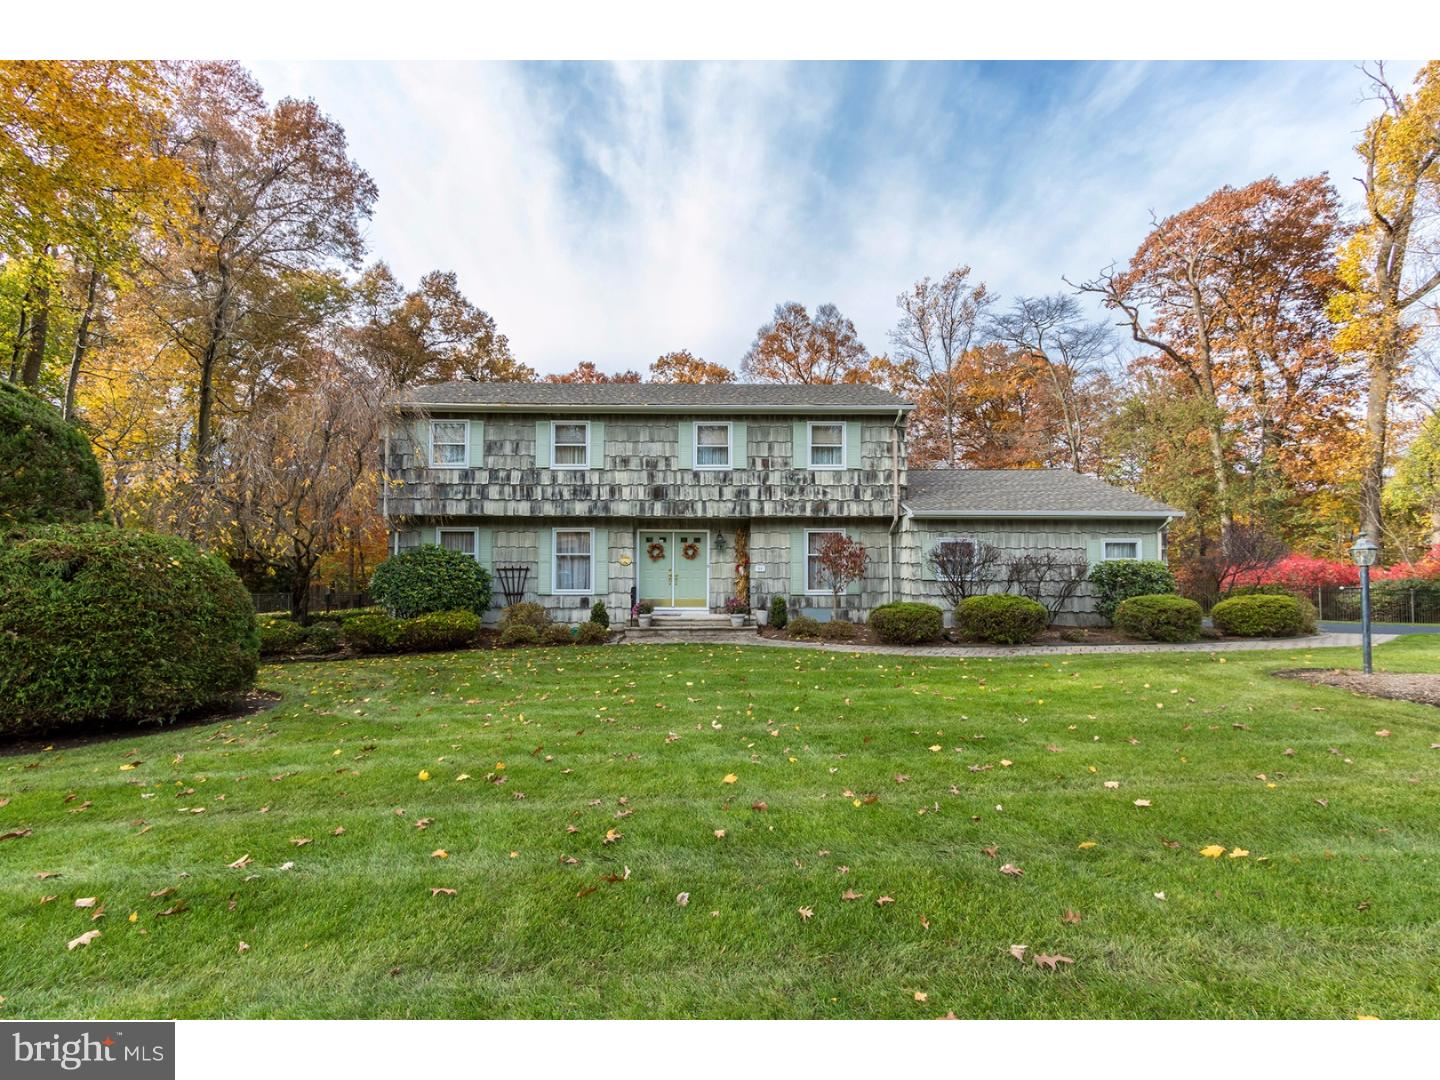 55 BURMA ROAD, WYCKOFF, NJ 07481